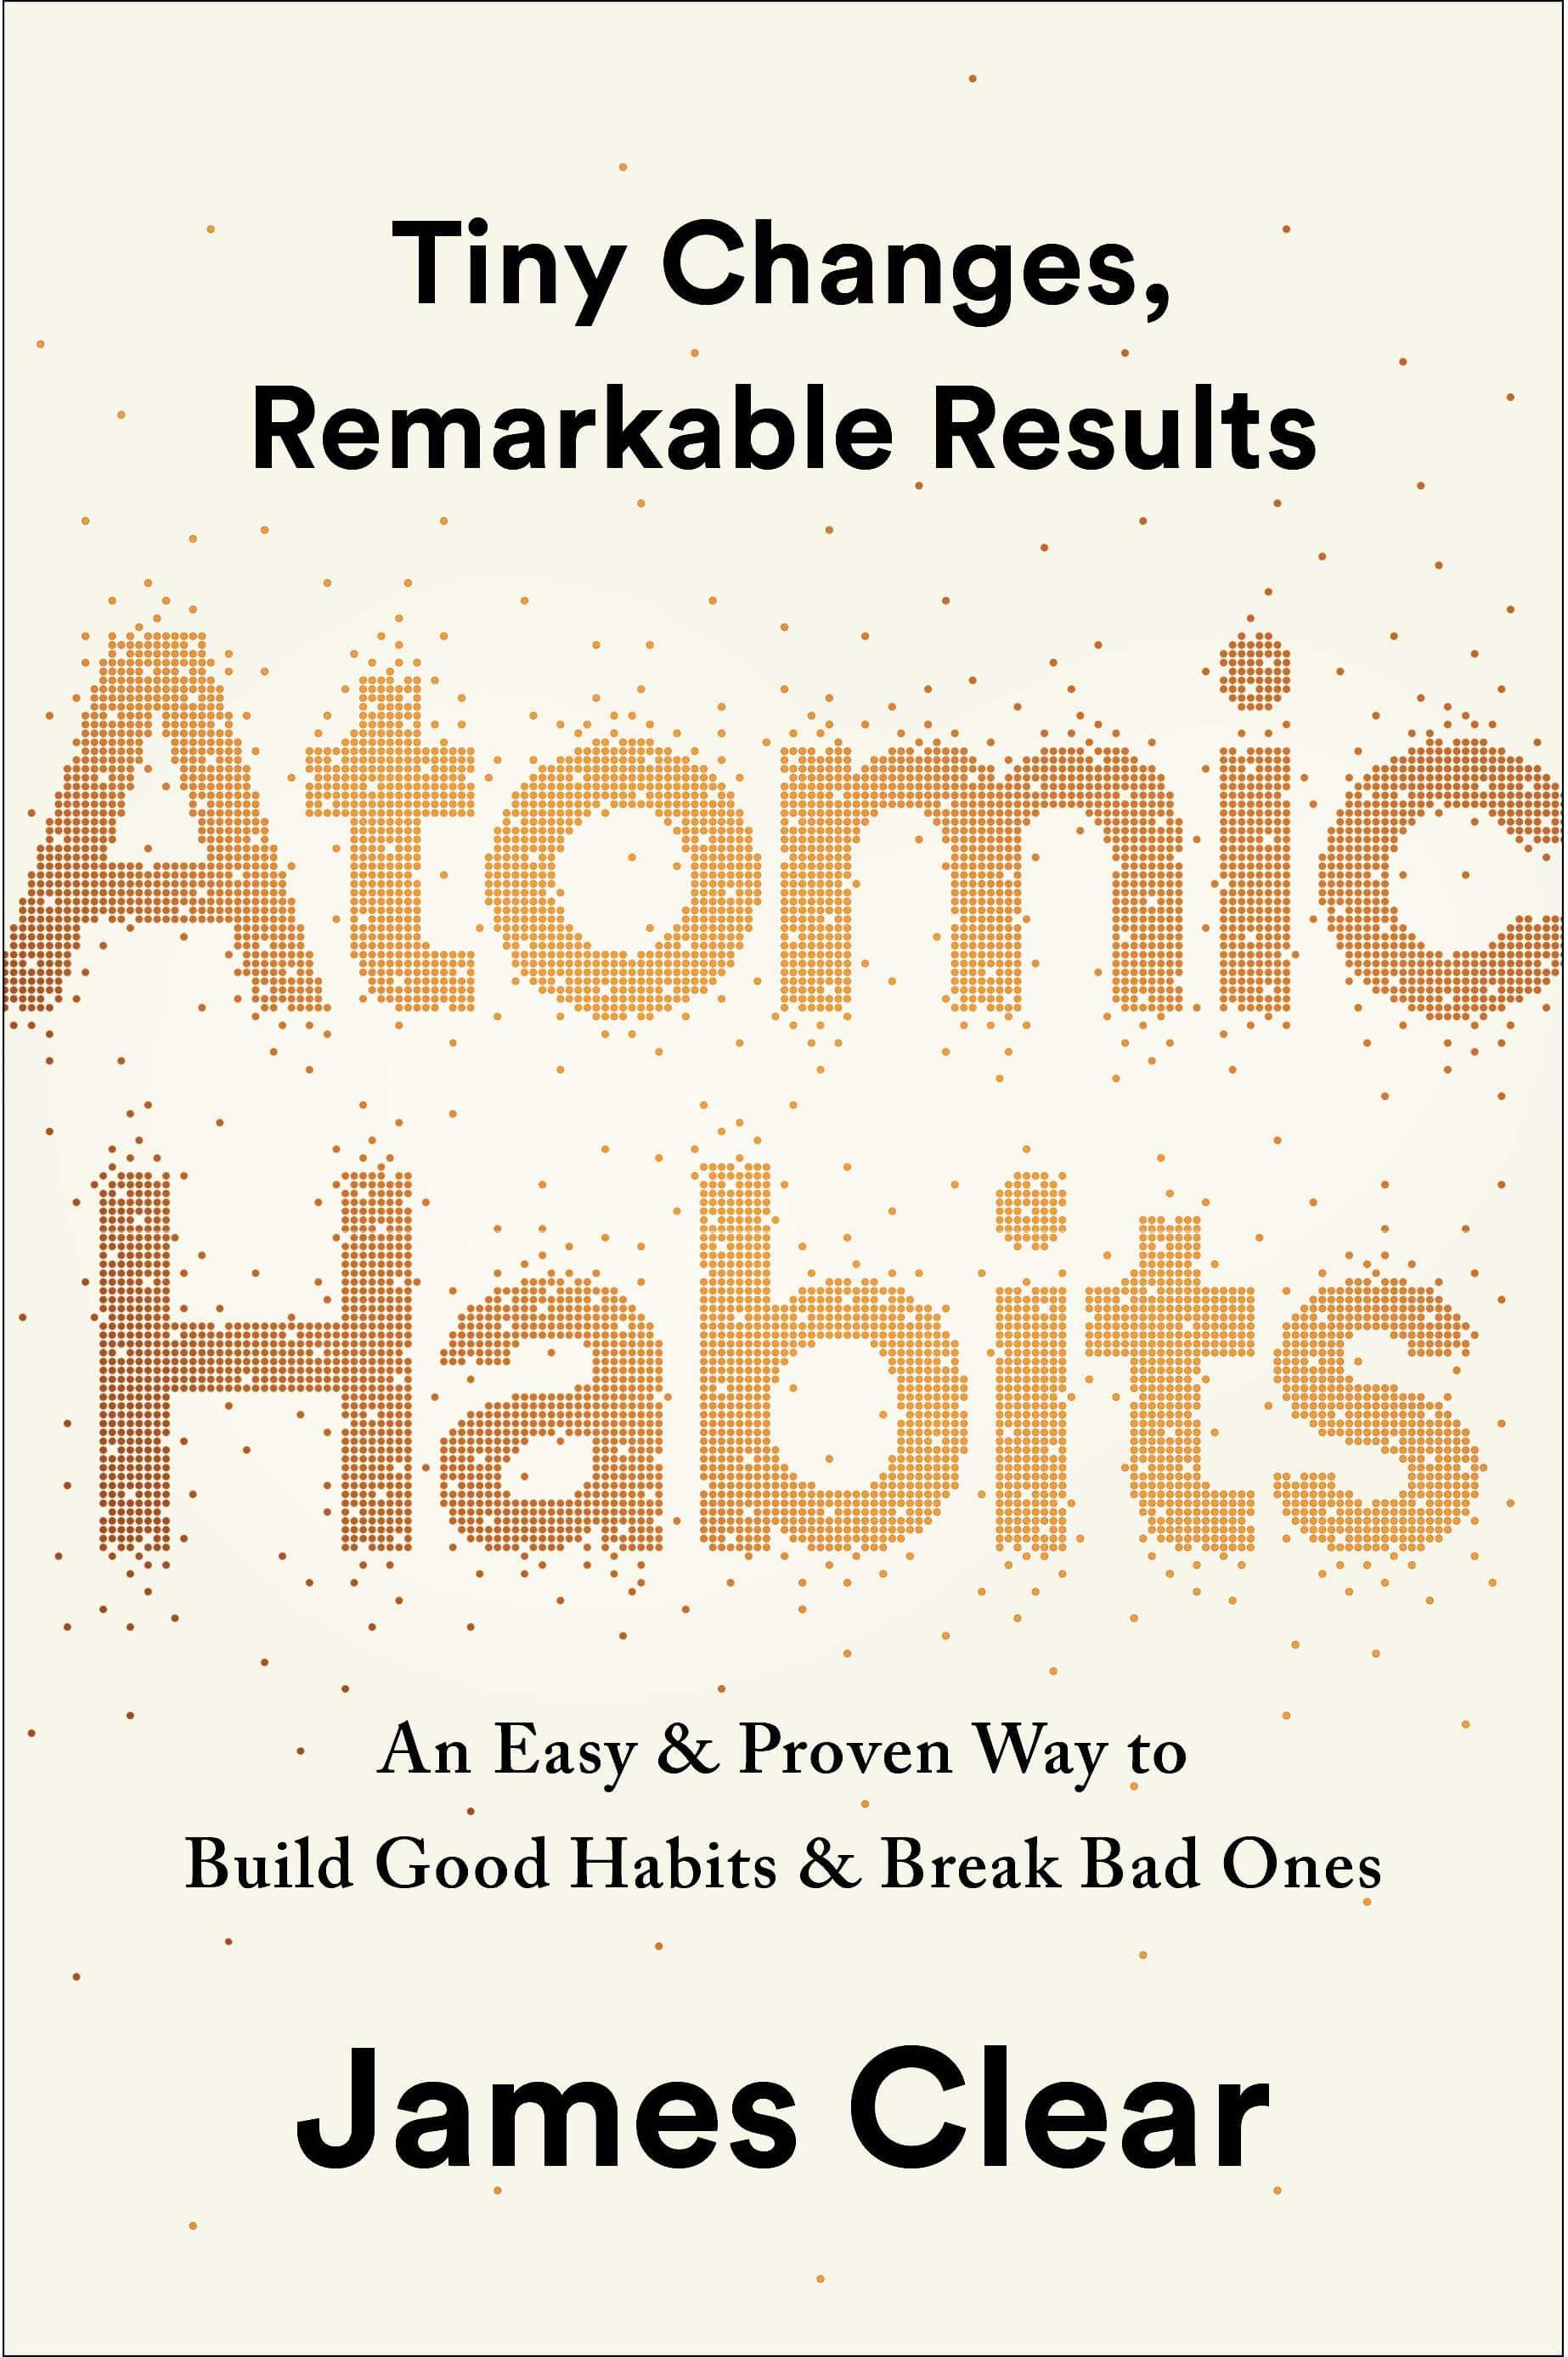 Atomic Habits: An Easy & Proven Way to Build Good Habits & Break Bad Ones - by James Clear